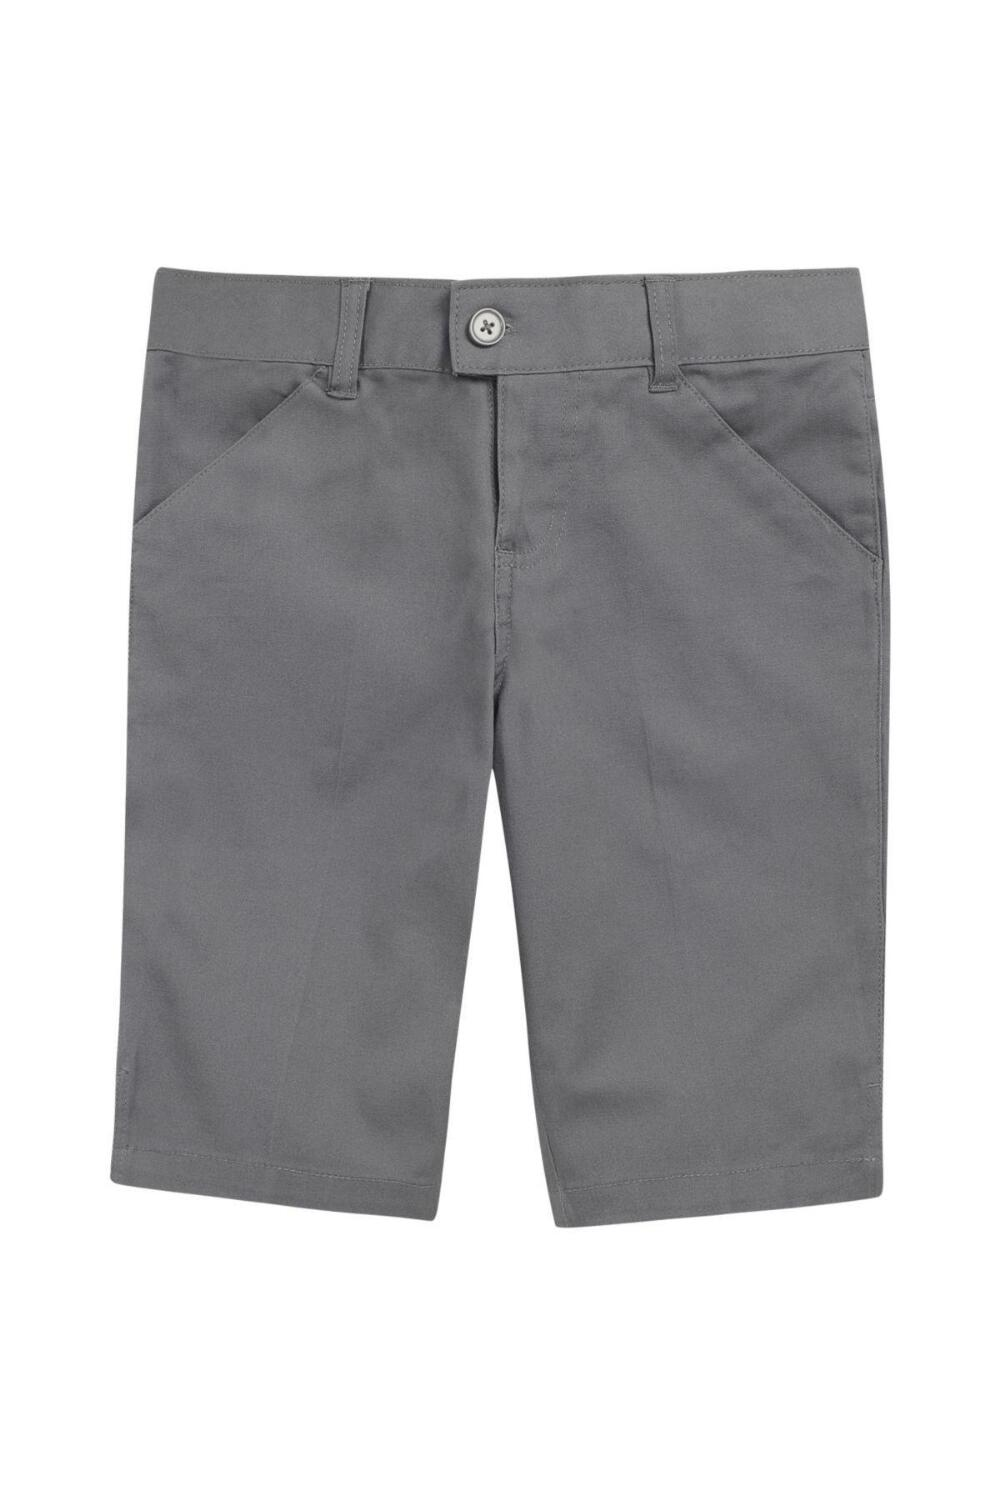 French Toast Girl's Bermuda Short (Color: Grey Short - SWCS, Size: 4)